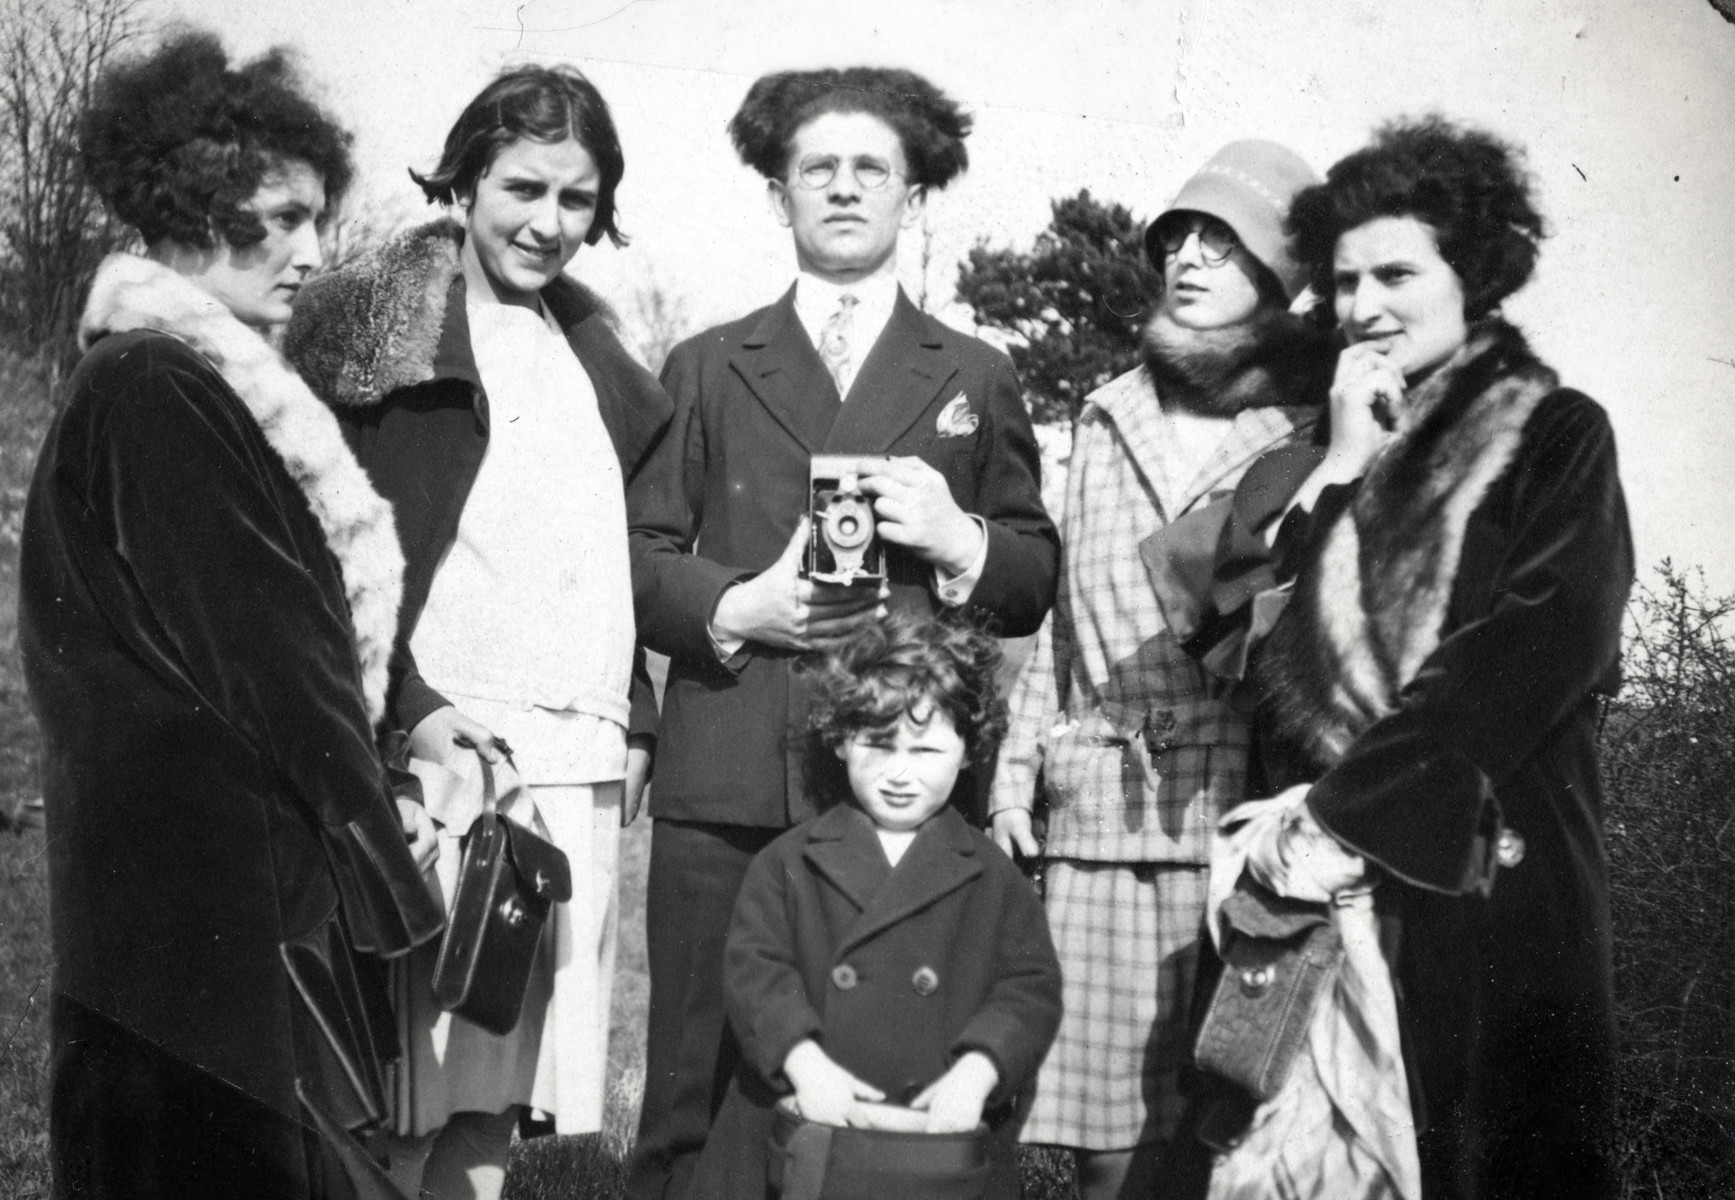 Group portrait of young adults in Alsace.  Suzanne Levy is on the far right, and her sister Germaine Levy is on the far left.